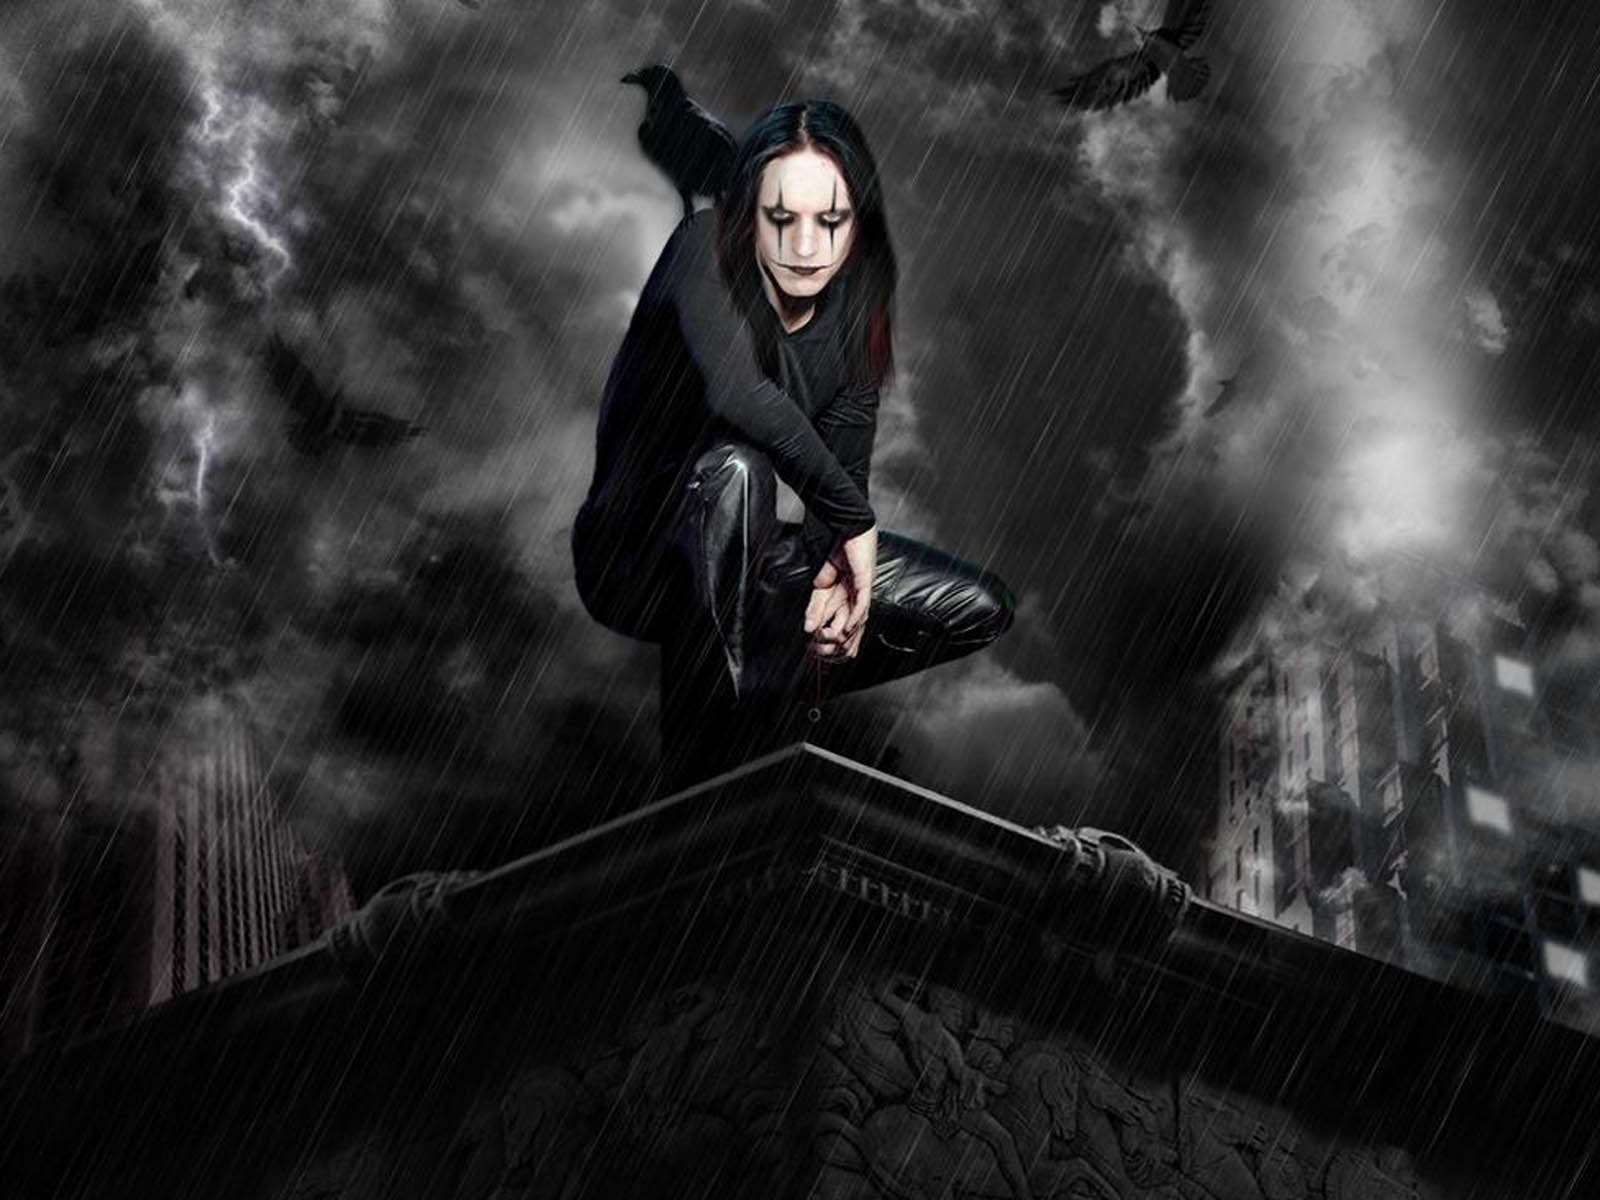 wallpaper Dark Gothic Wallpapers 1600x1200